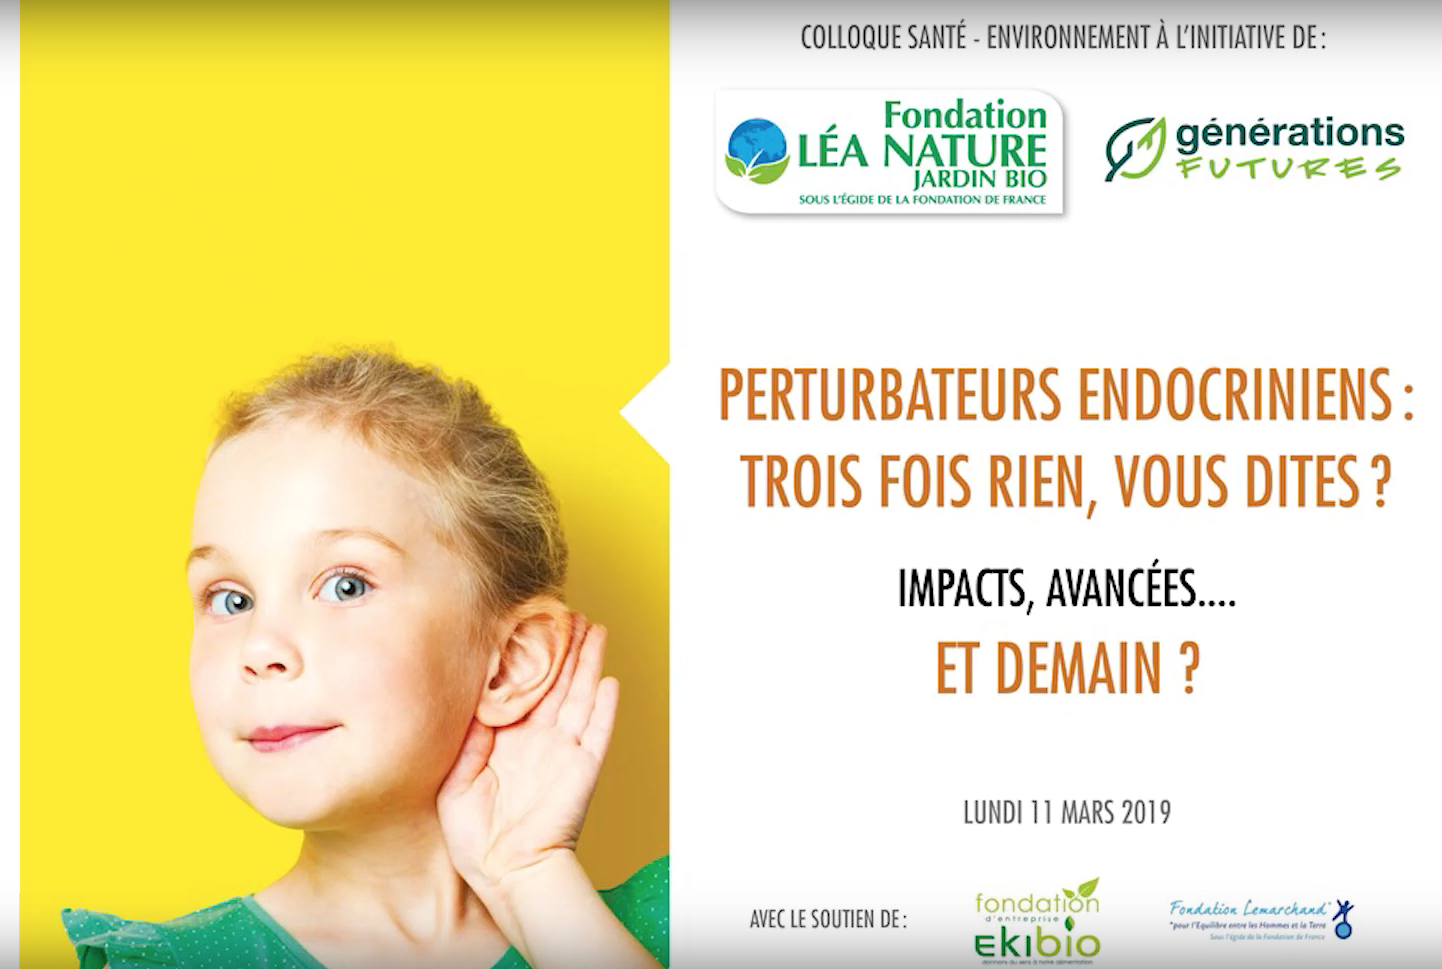 Colloque perturbateurs endocriniens du 11 mars 2019 à l'Assemblée Nationale